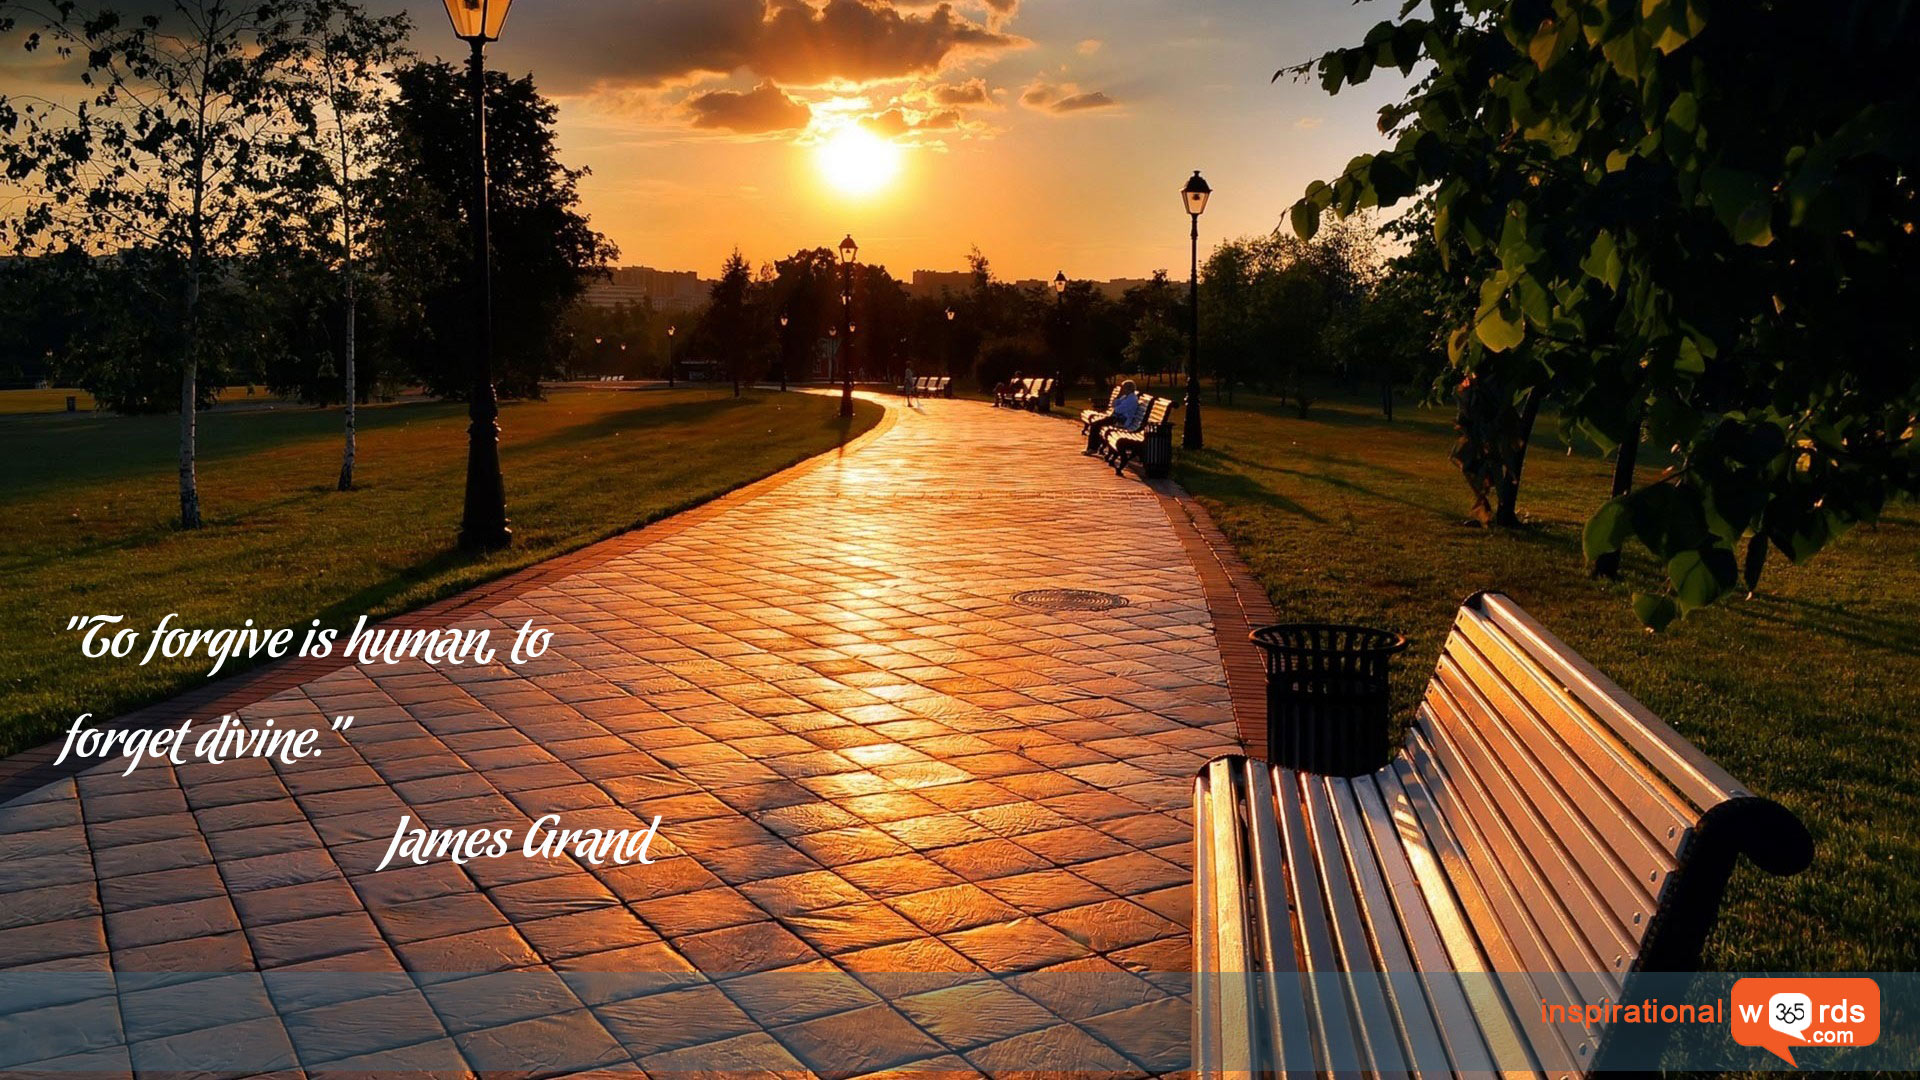 Inspirational Wallpaper Quote by James Grand